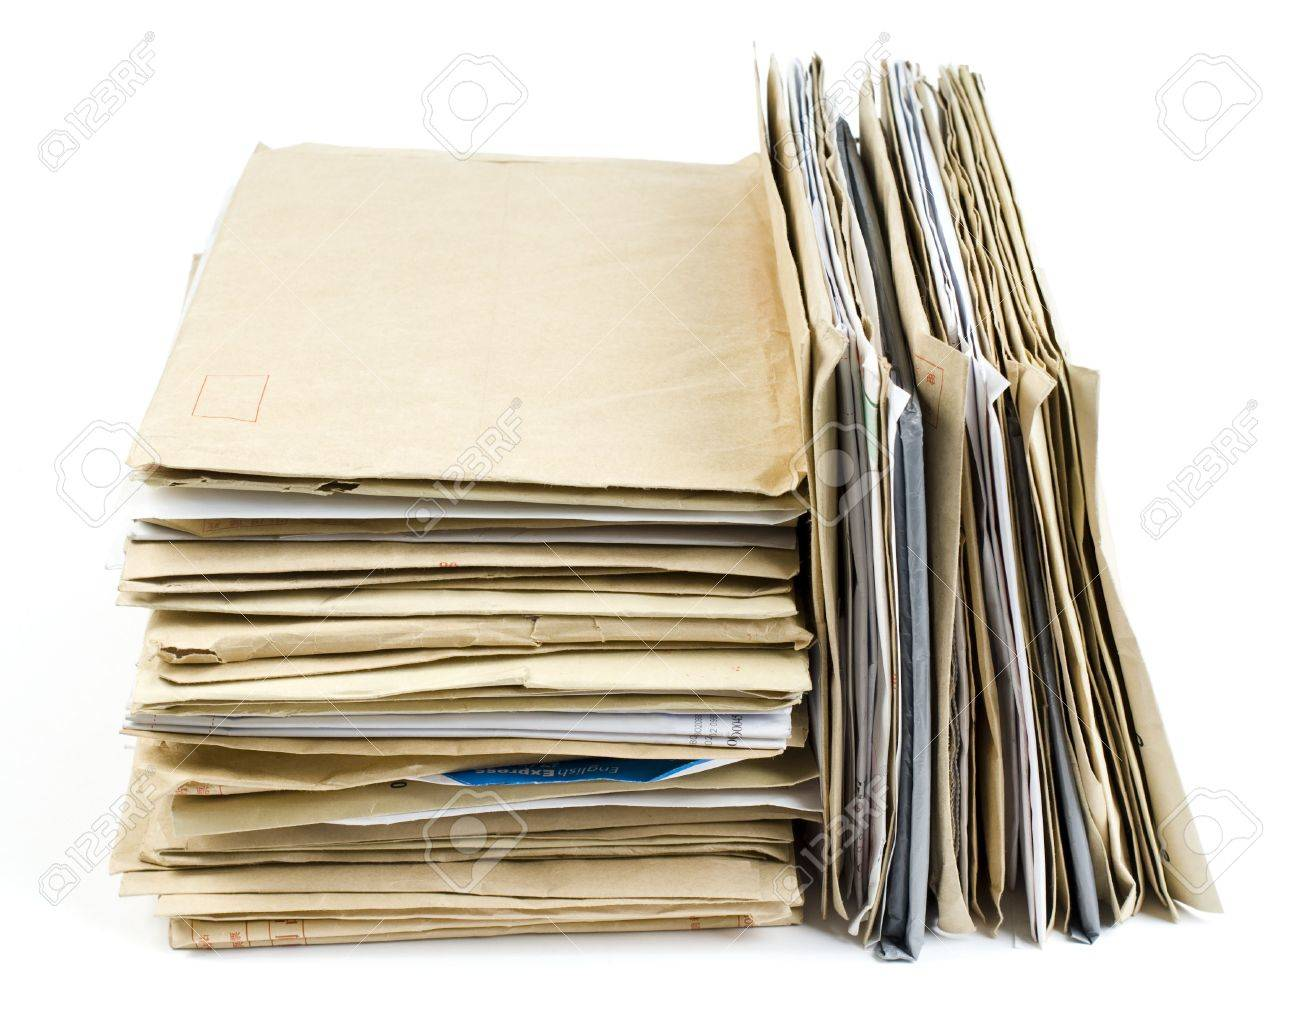 File Stack close up shot on white background Stock Photo - 6904236